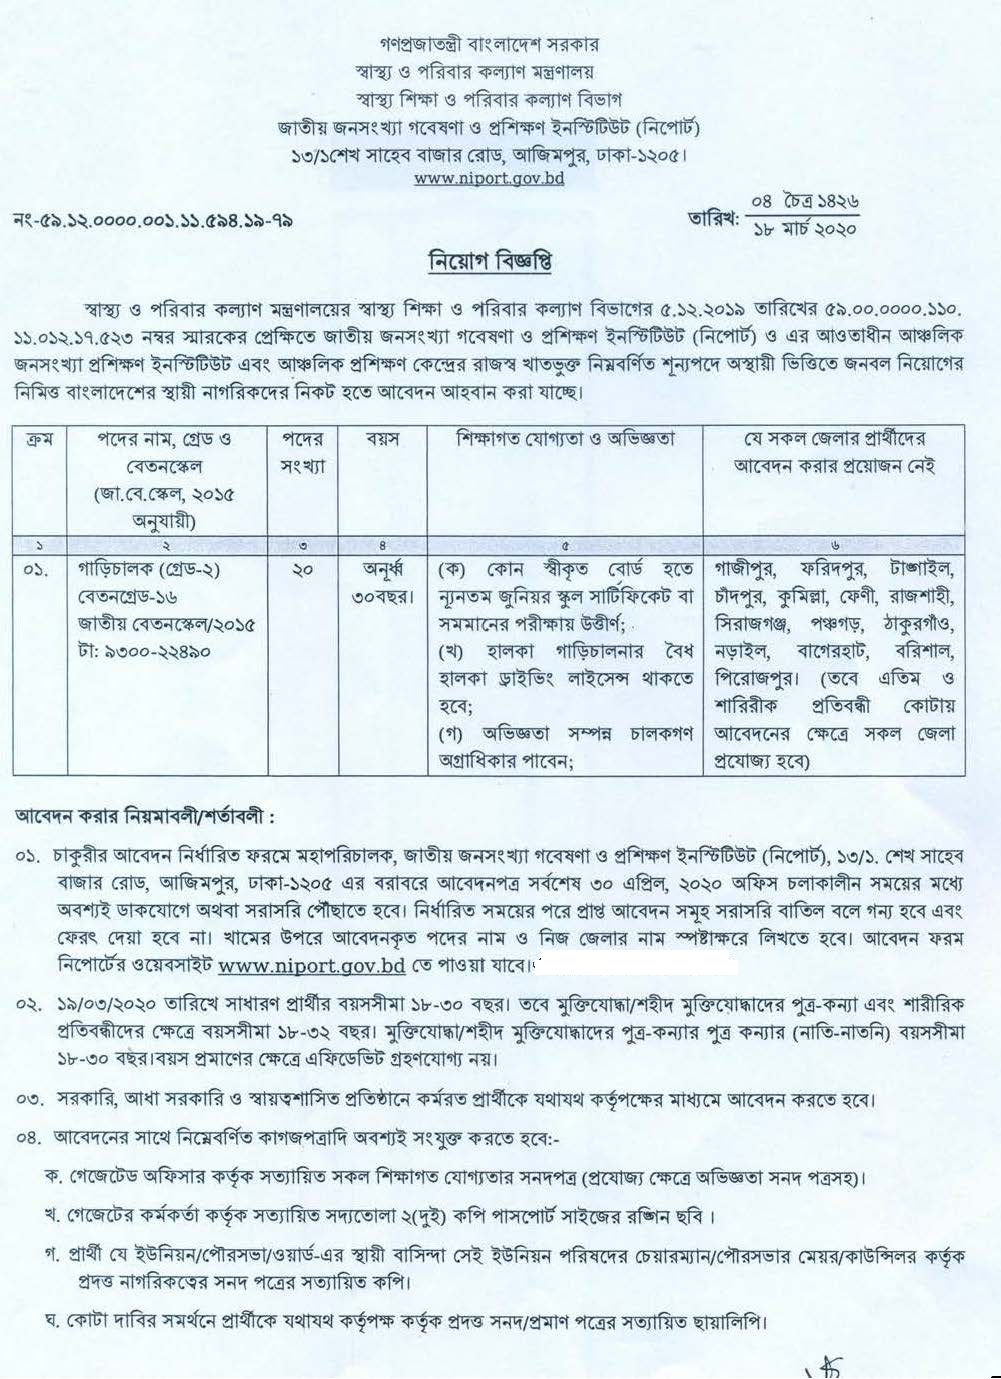 Medical Education and Family Welfare Division Job Circular 2020